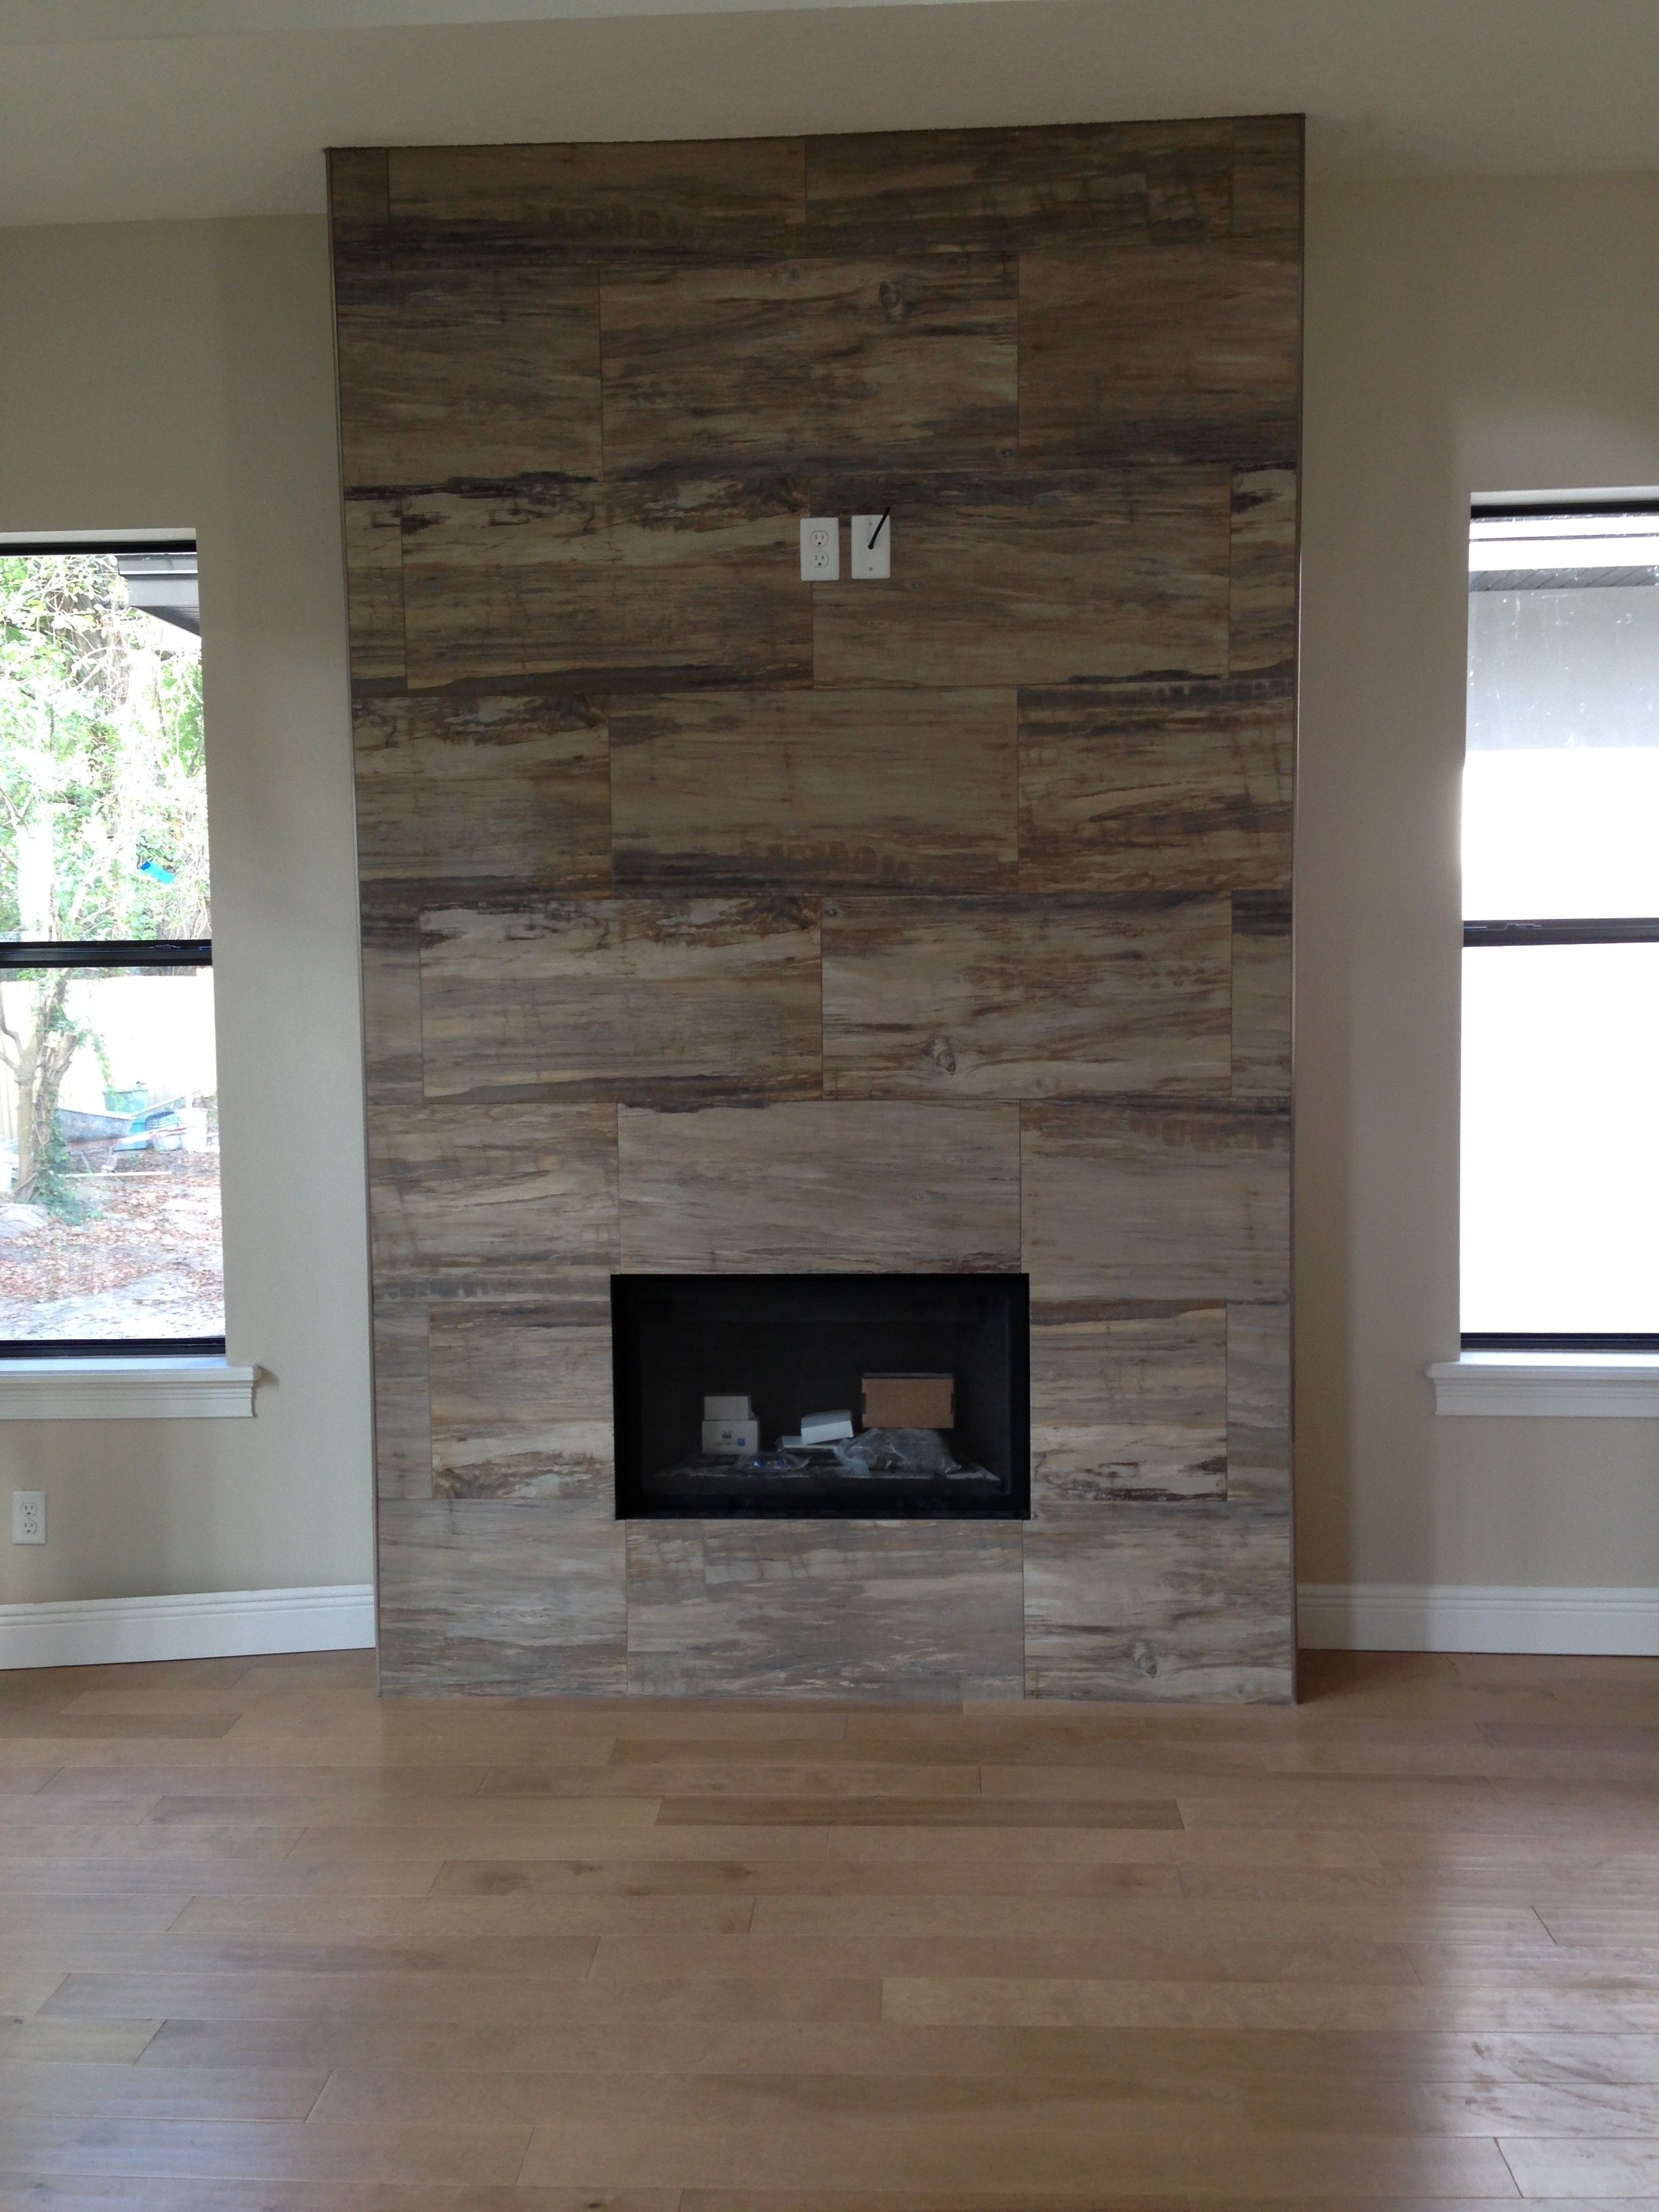 j wood tile makes an absolutely stunning fireplace inspiration